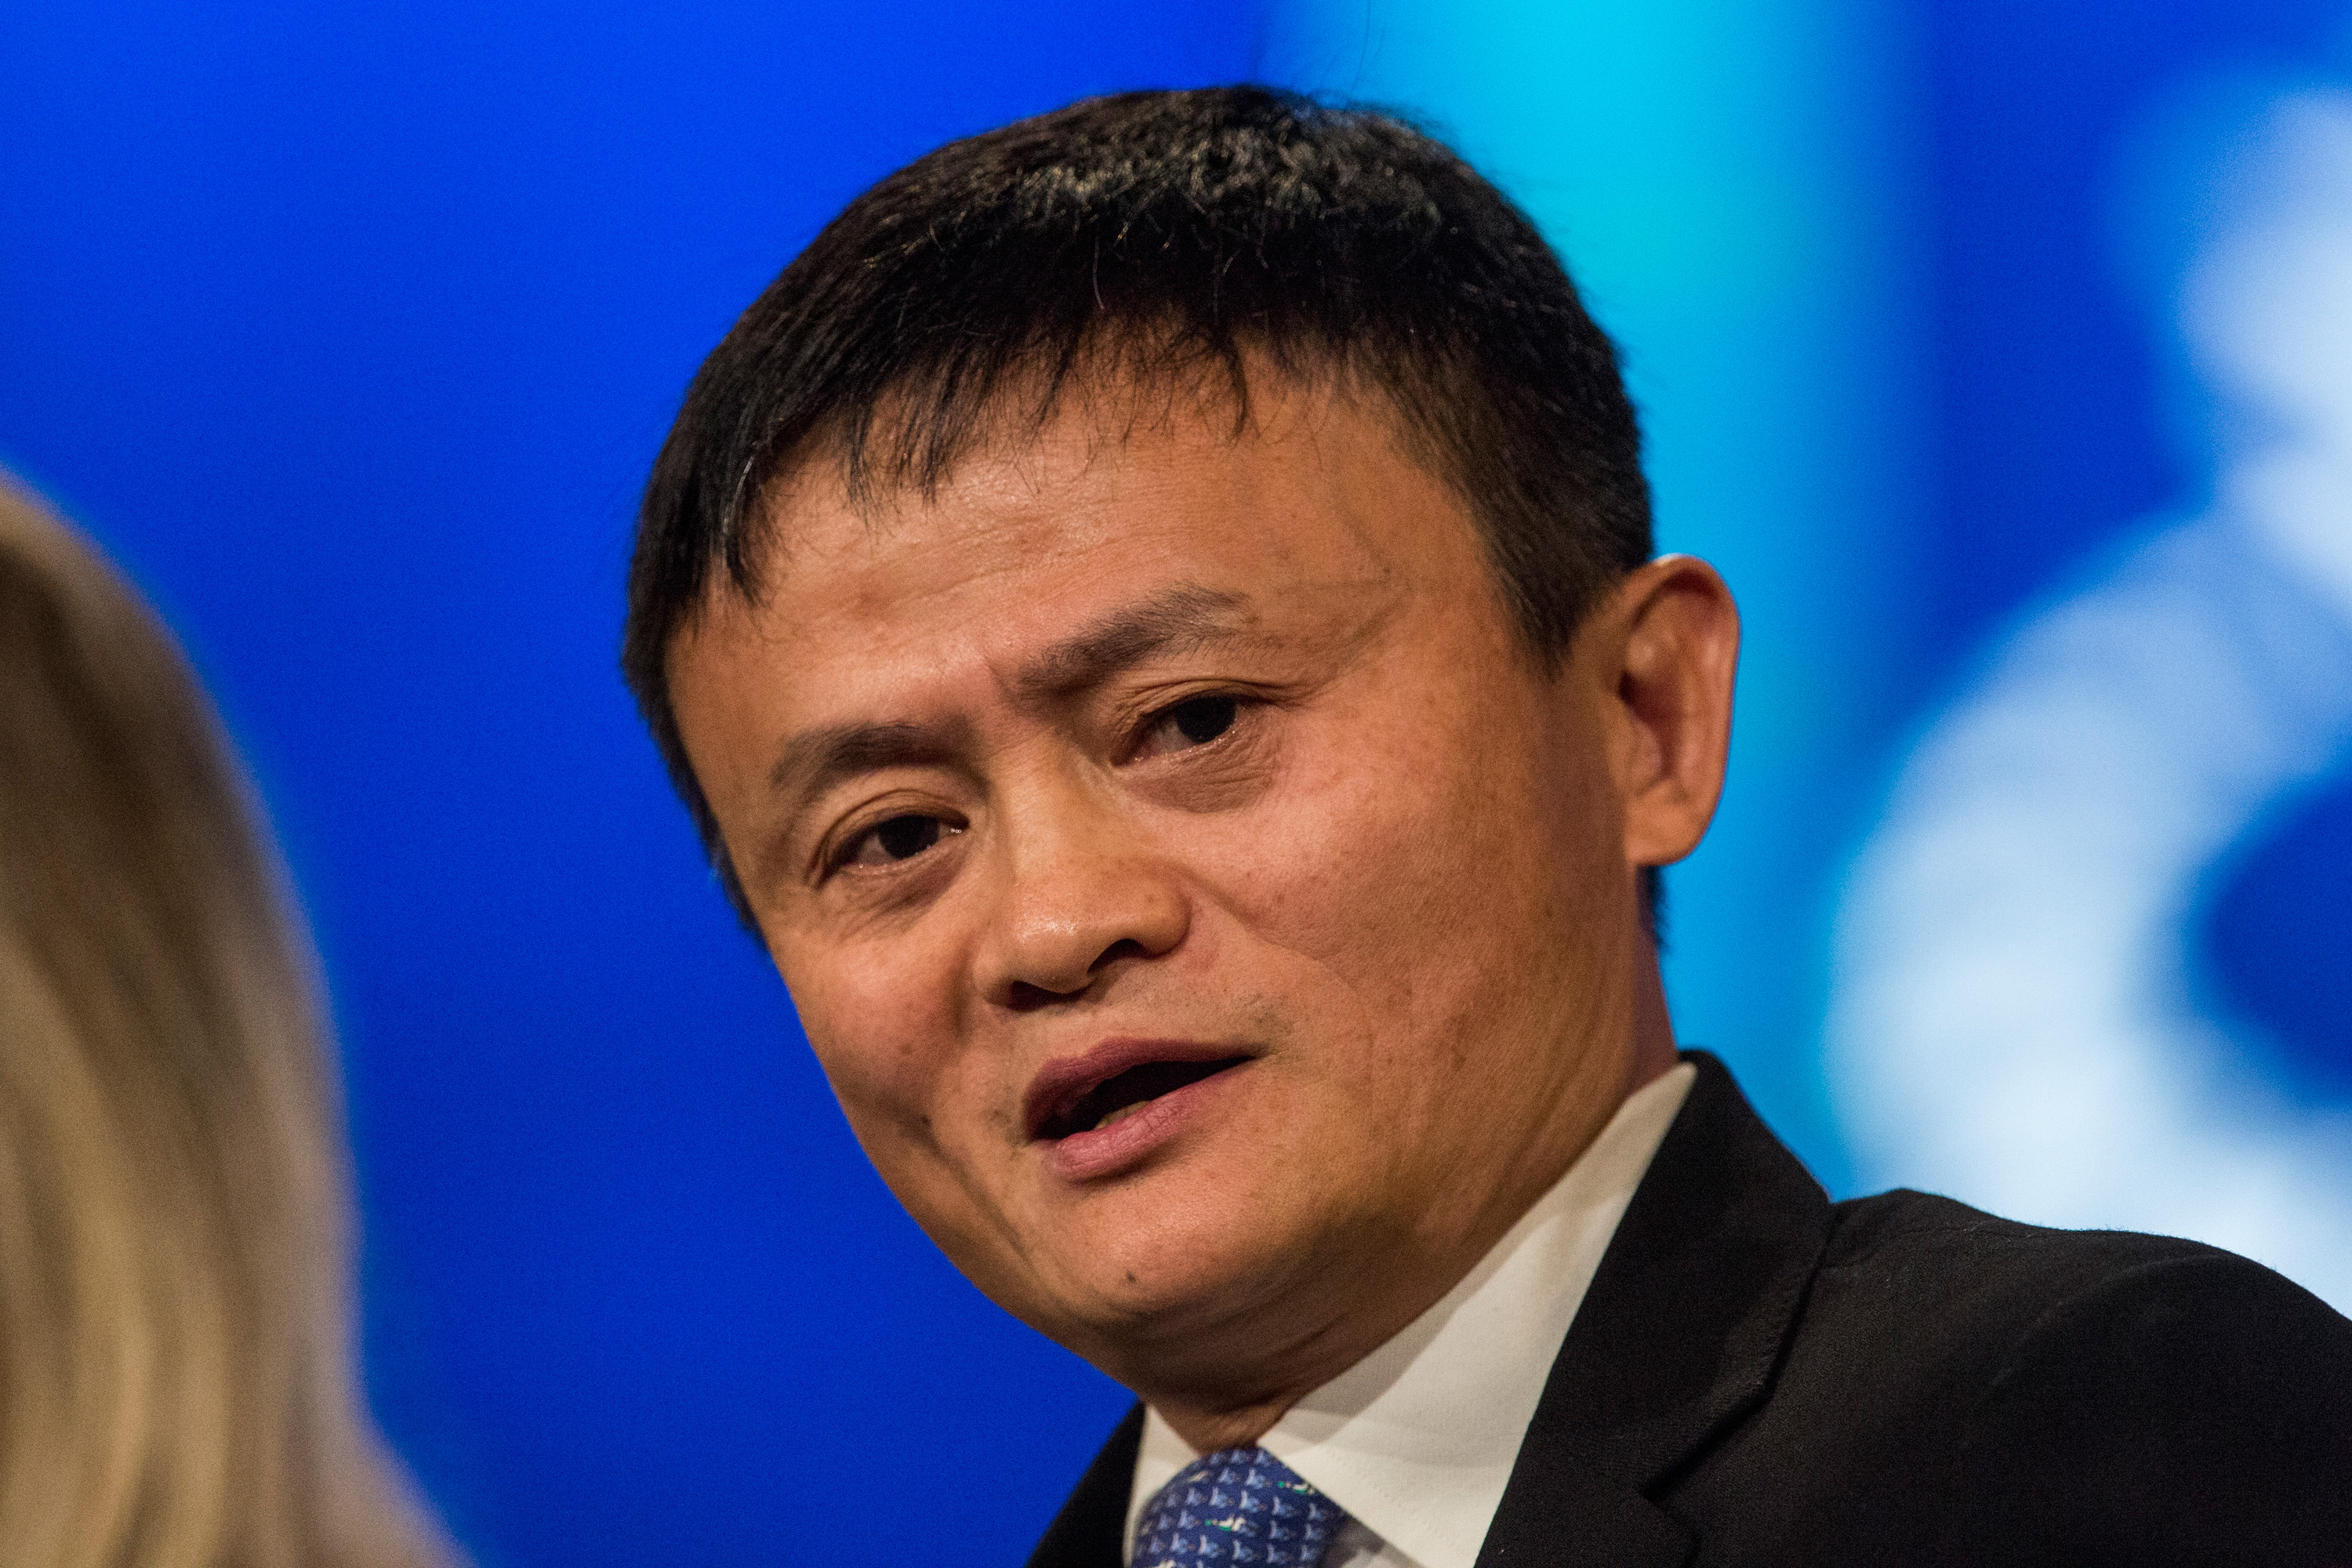 Alibaba founder and CEO Jack Ma, ready to correct me.